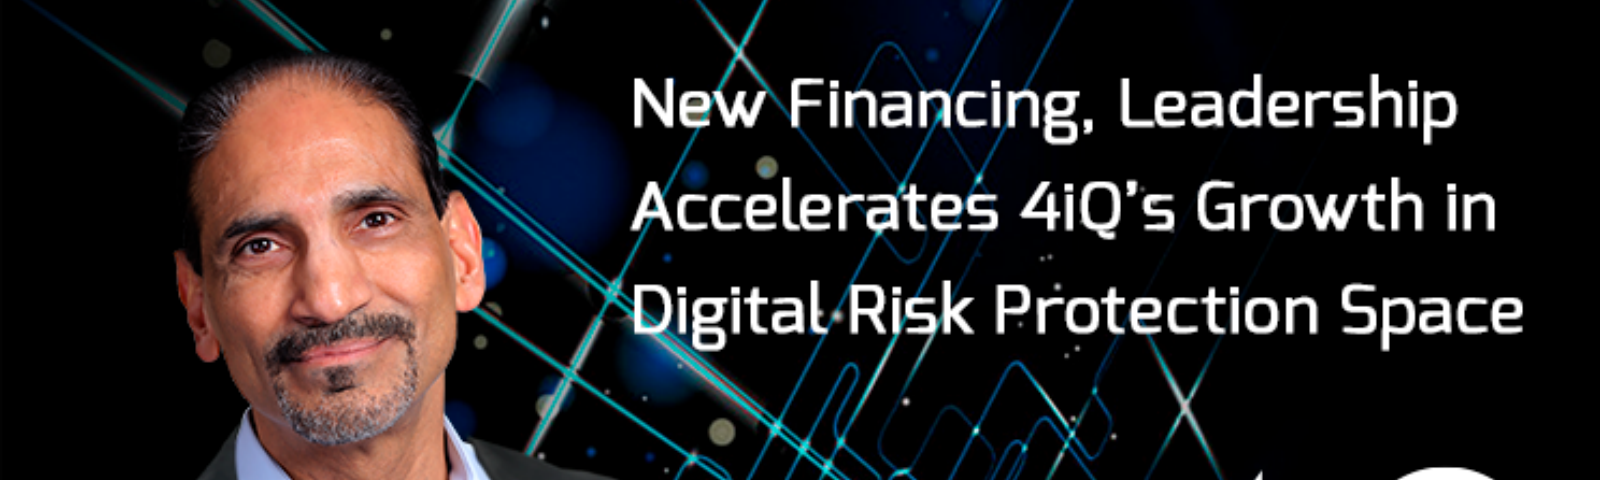 New Financing, Leadership Accelerates 4iQ's Growth in Digital Risk Protection Space. Kailash Ambwani, CEO, 4iQ